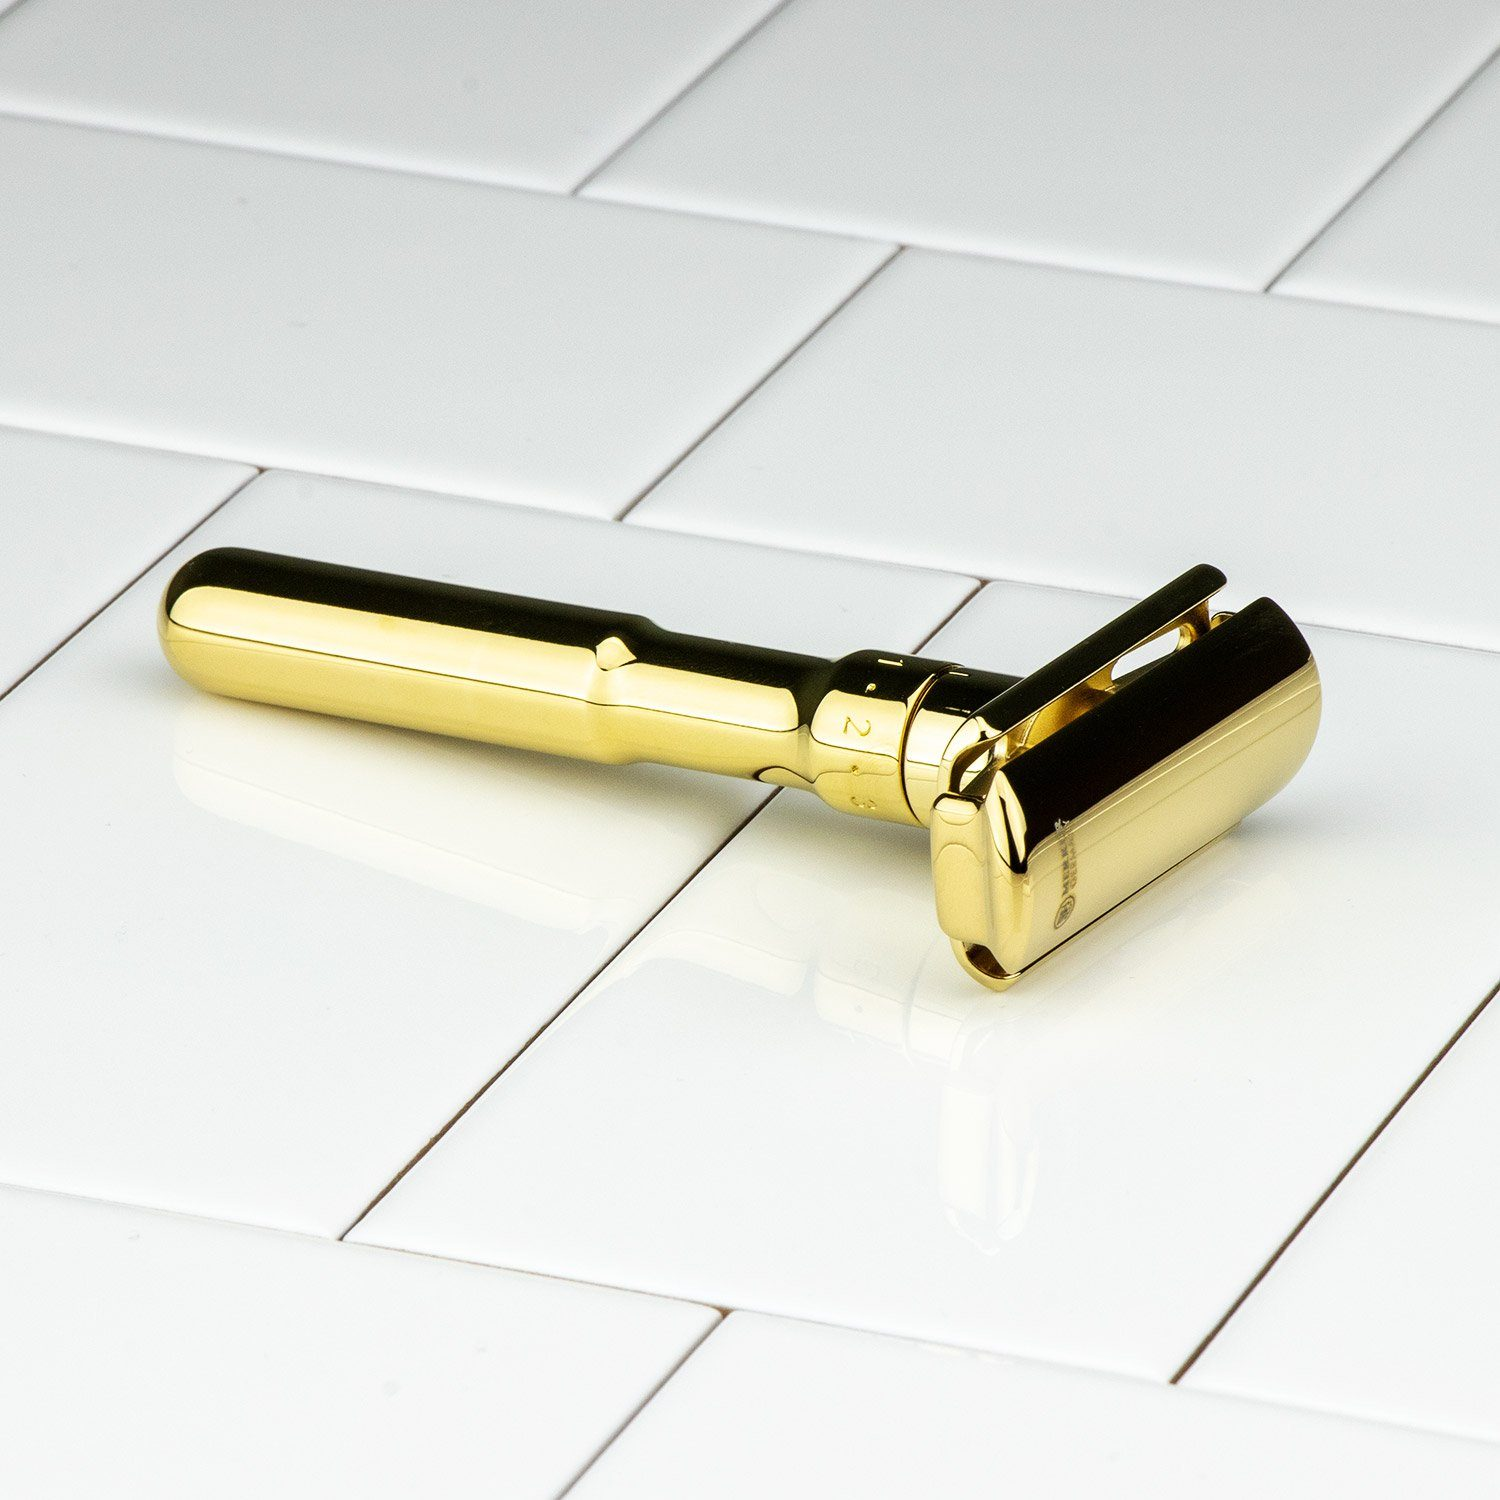 Merkur Futur Adjustable DE Safety Razor